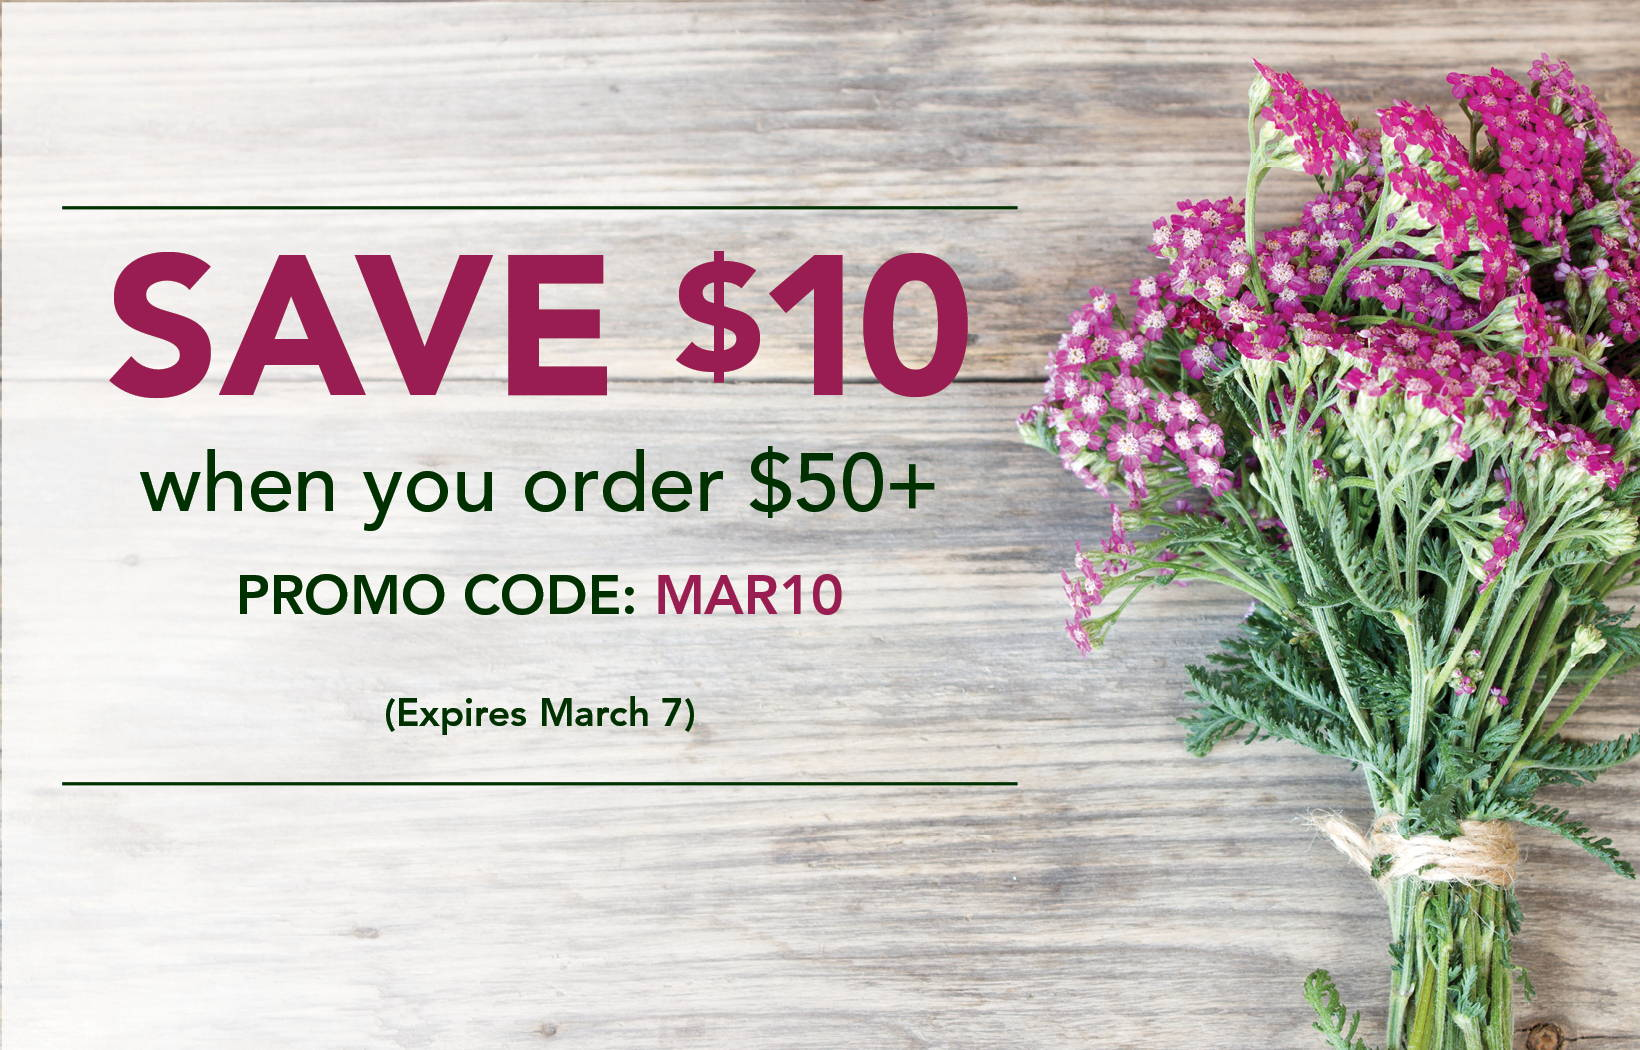 Save $10 when you order $50+ with promo code MAR10